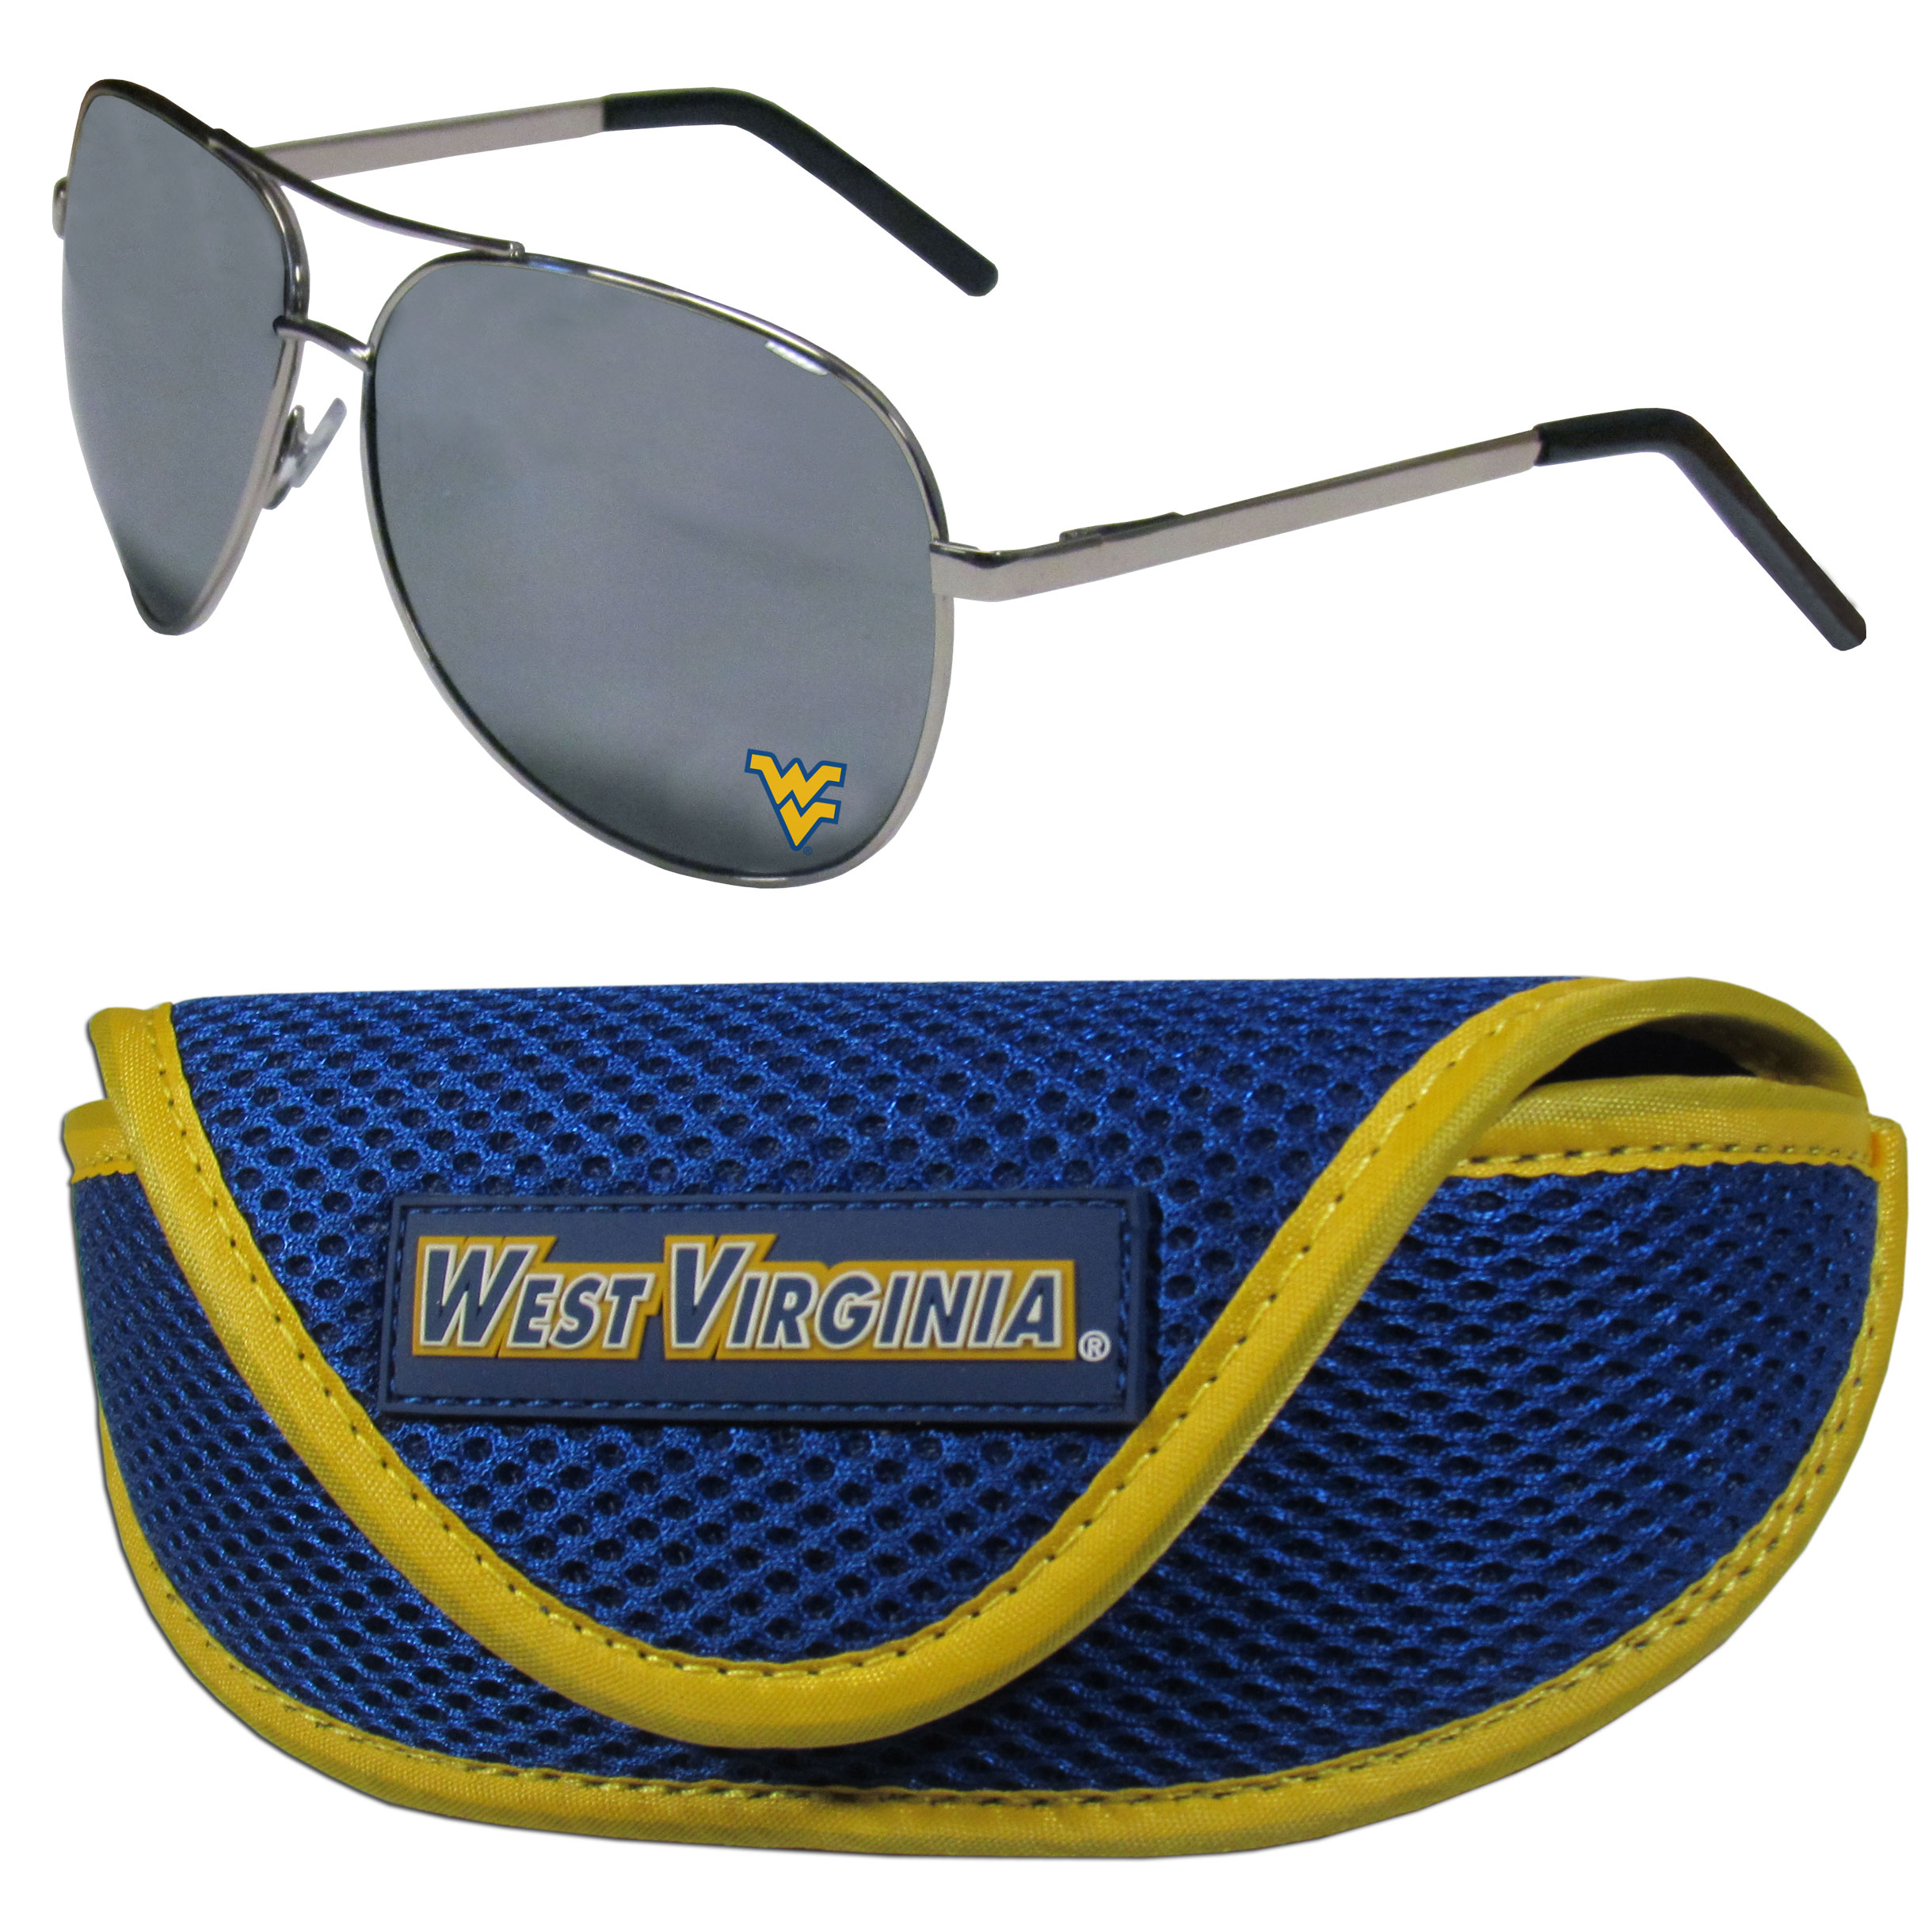 W. Virginia Mountaineers Aviator Sunglasses and Sports Case - Aviator sunglasses are truly an iconic retro fashion statement that never goes out-of-style. Our W. Virginia Mountaineers  aviator sunglasses pair this classic look with your love of the game. The iridium coated lenses reduce glare while driving, boating, golfing and their 100% UVA/UVB rating provides you with the maximum UV protection for all your outdoor activities. A millennial favorite, these affordable designer frames are the perfect eyewear accessory for a sports fan that is looking for high-quality at an affordable price. The durable, flex hinged frames are tough enough for hiking and camping or if you prefer sun bathing by the pool or on the beach these shades will really stand the test of time. The sunglasses come with a sporty case which has a large team logo on the lid that will make even the most die-hard fan proud!